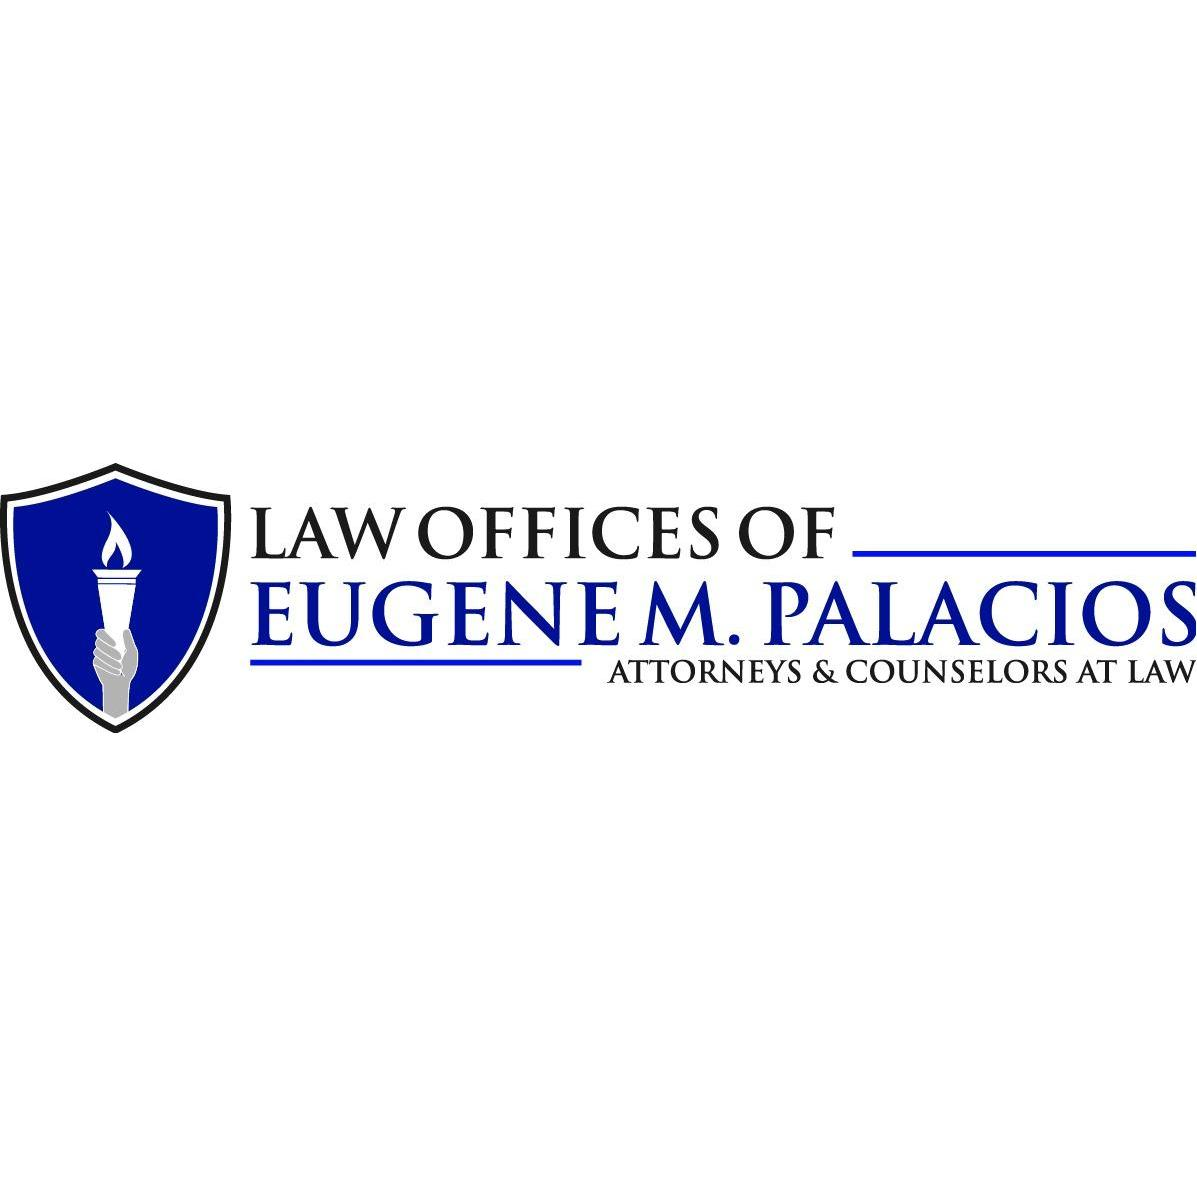 Law Offices of Eugene M. Palacios